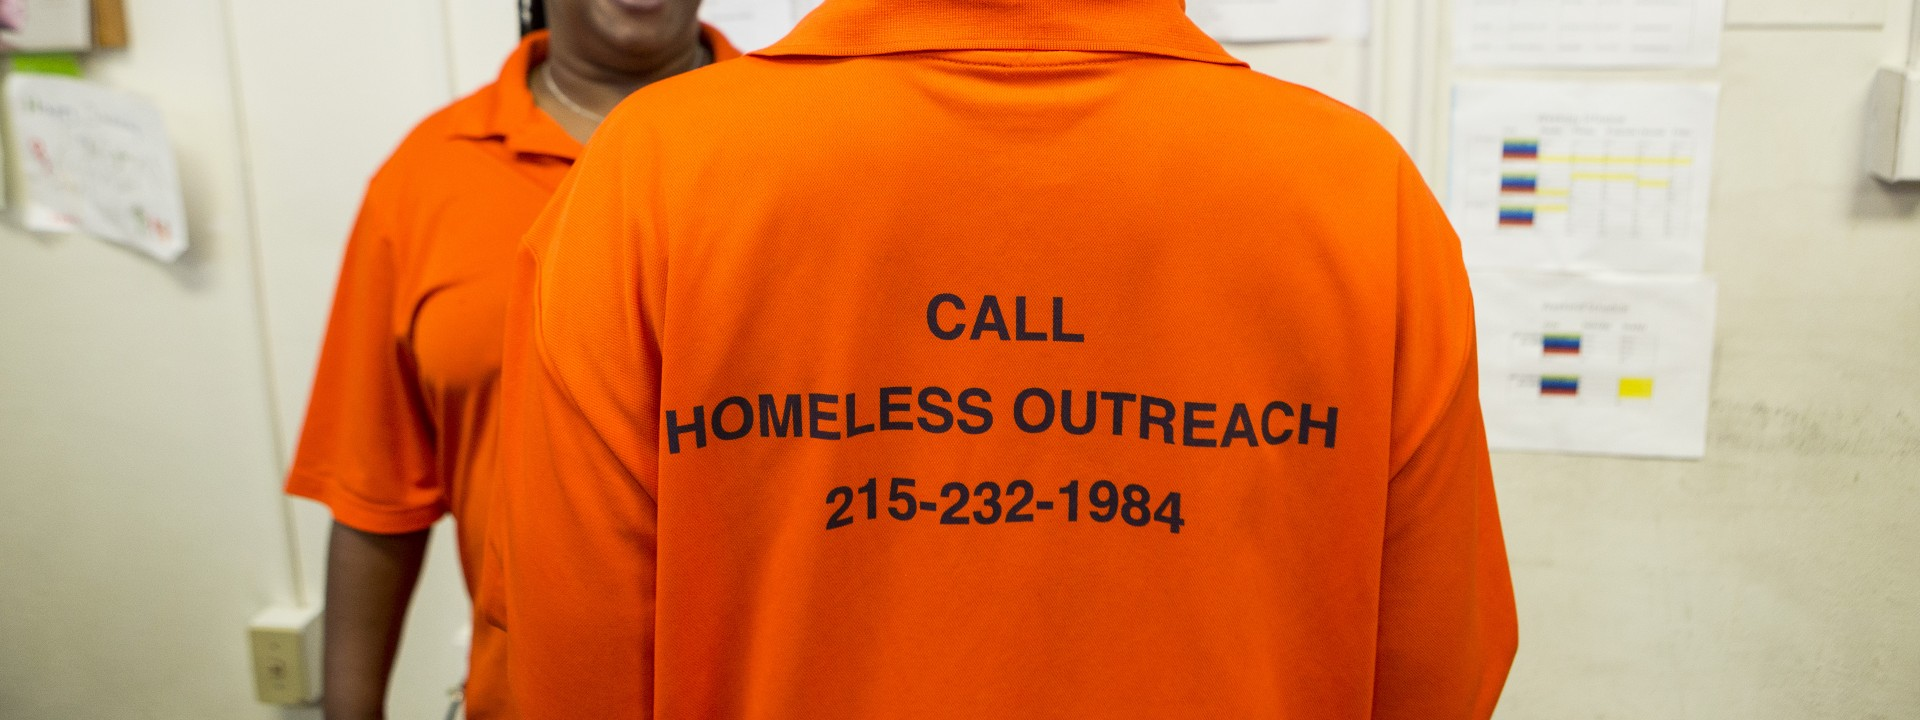 Outreach workers from the Outreach Coordination Center